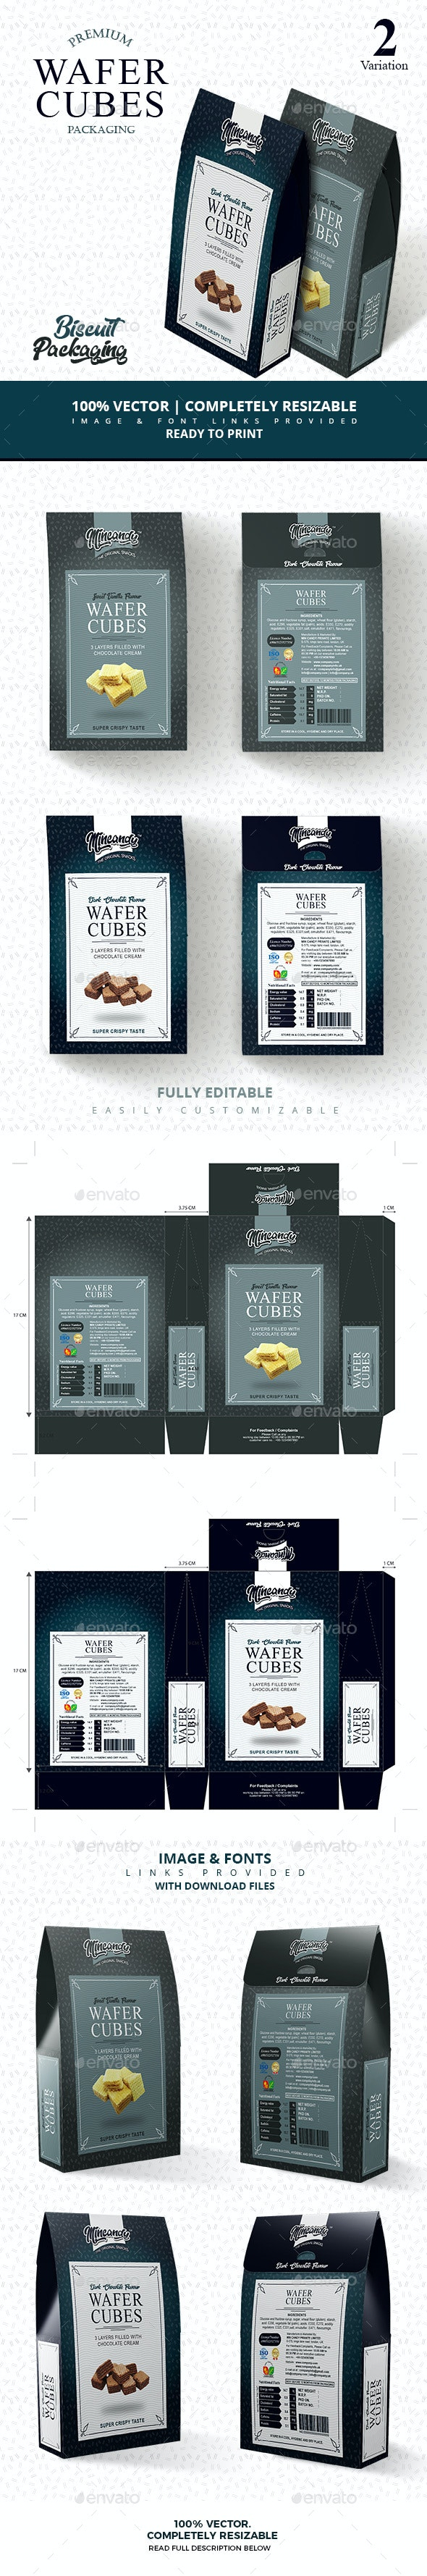 Premium wafer cubes packaging